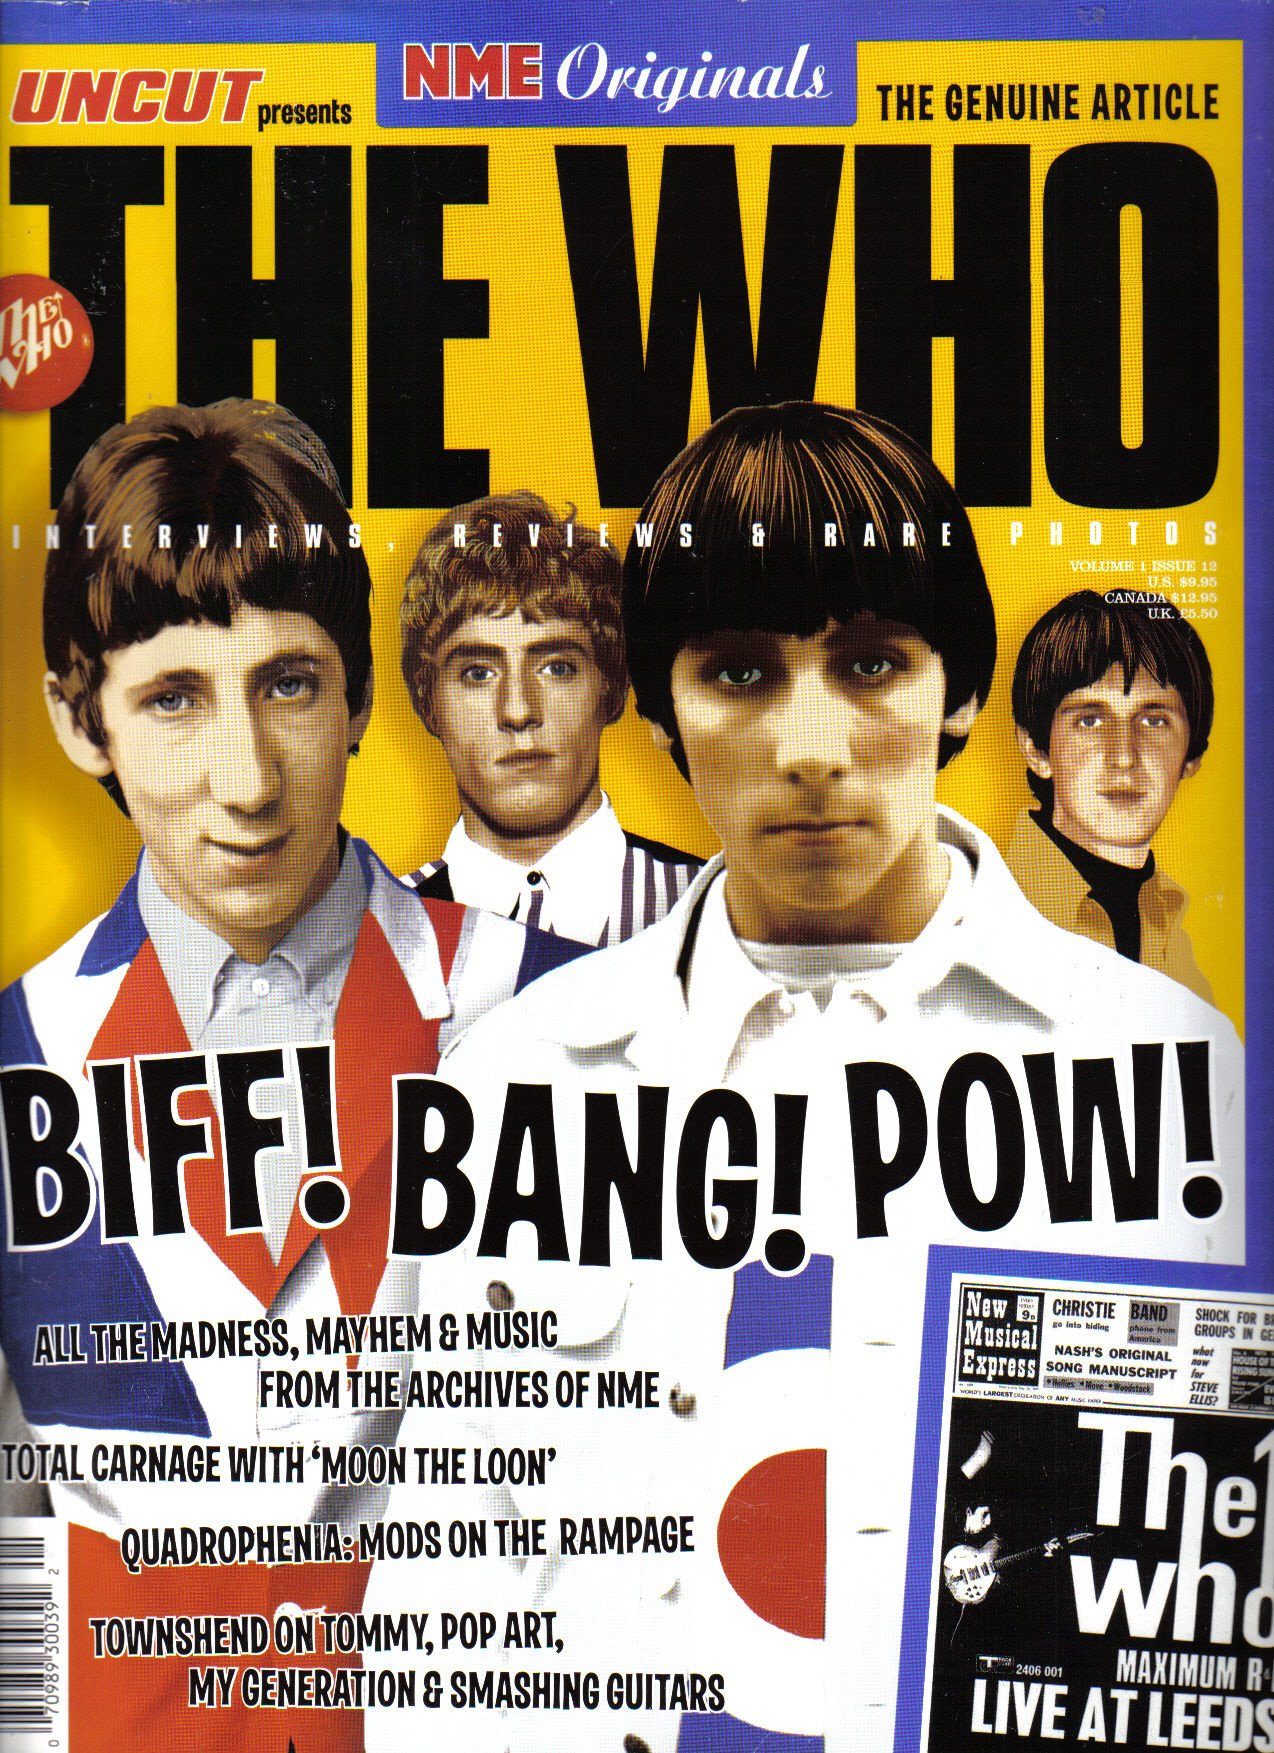 Read Online NME Originals Vol. 1 Issue 12 Published 2004 The Who - Biff! Bang! Pow! ePub fb2 book